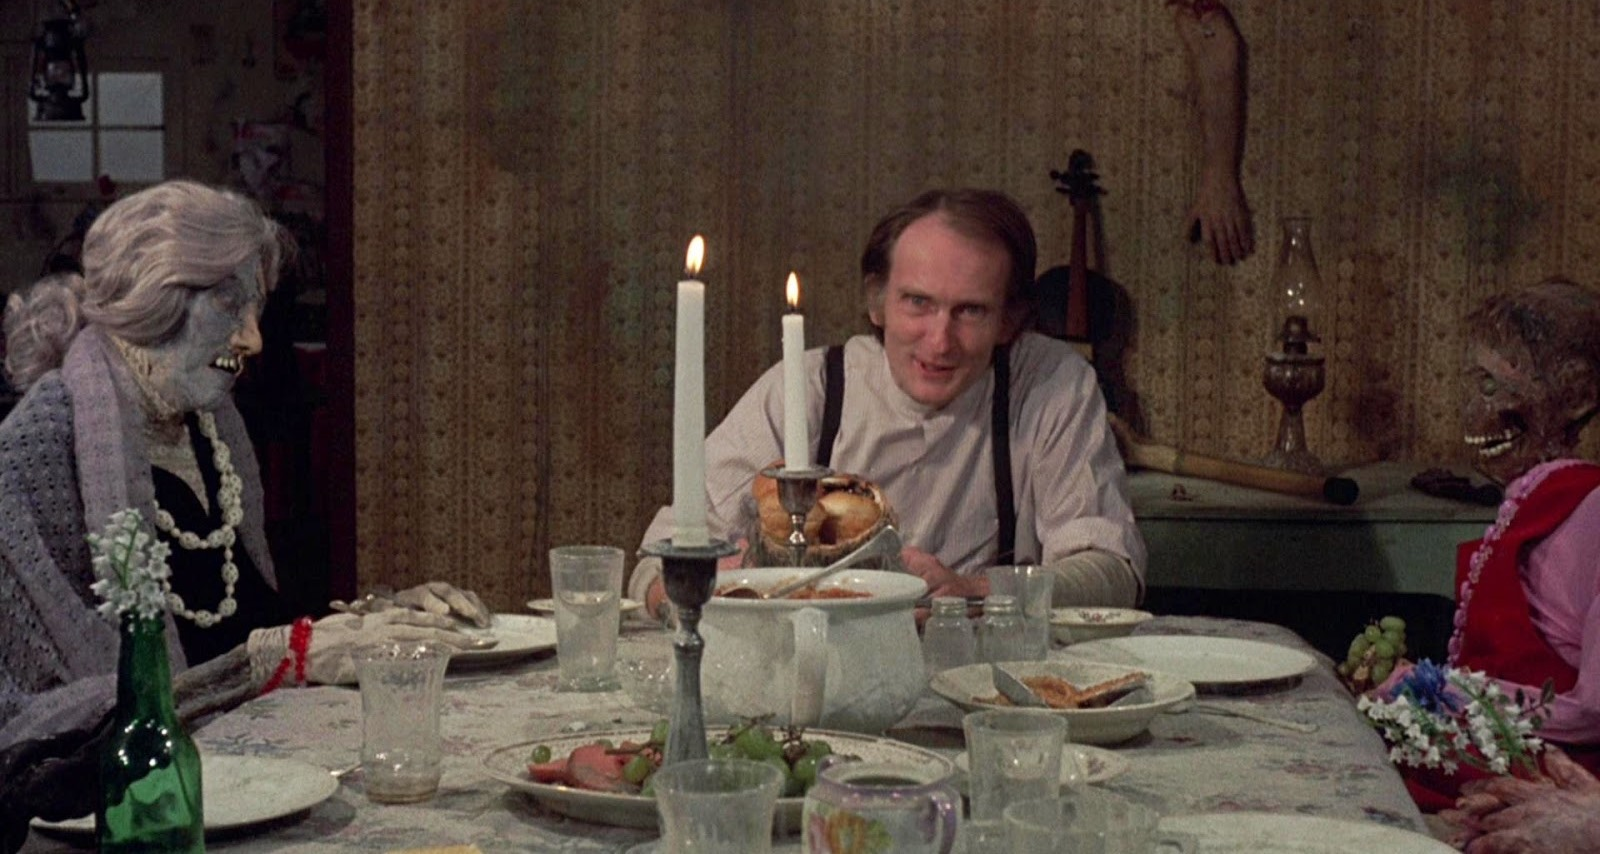 Roberts Blossom having dinner at a table of mummified corpses in Deranged (1974)